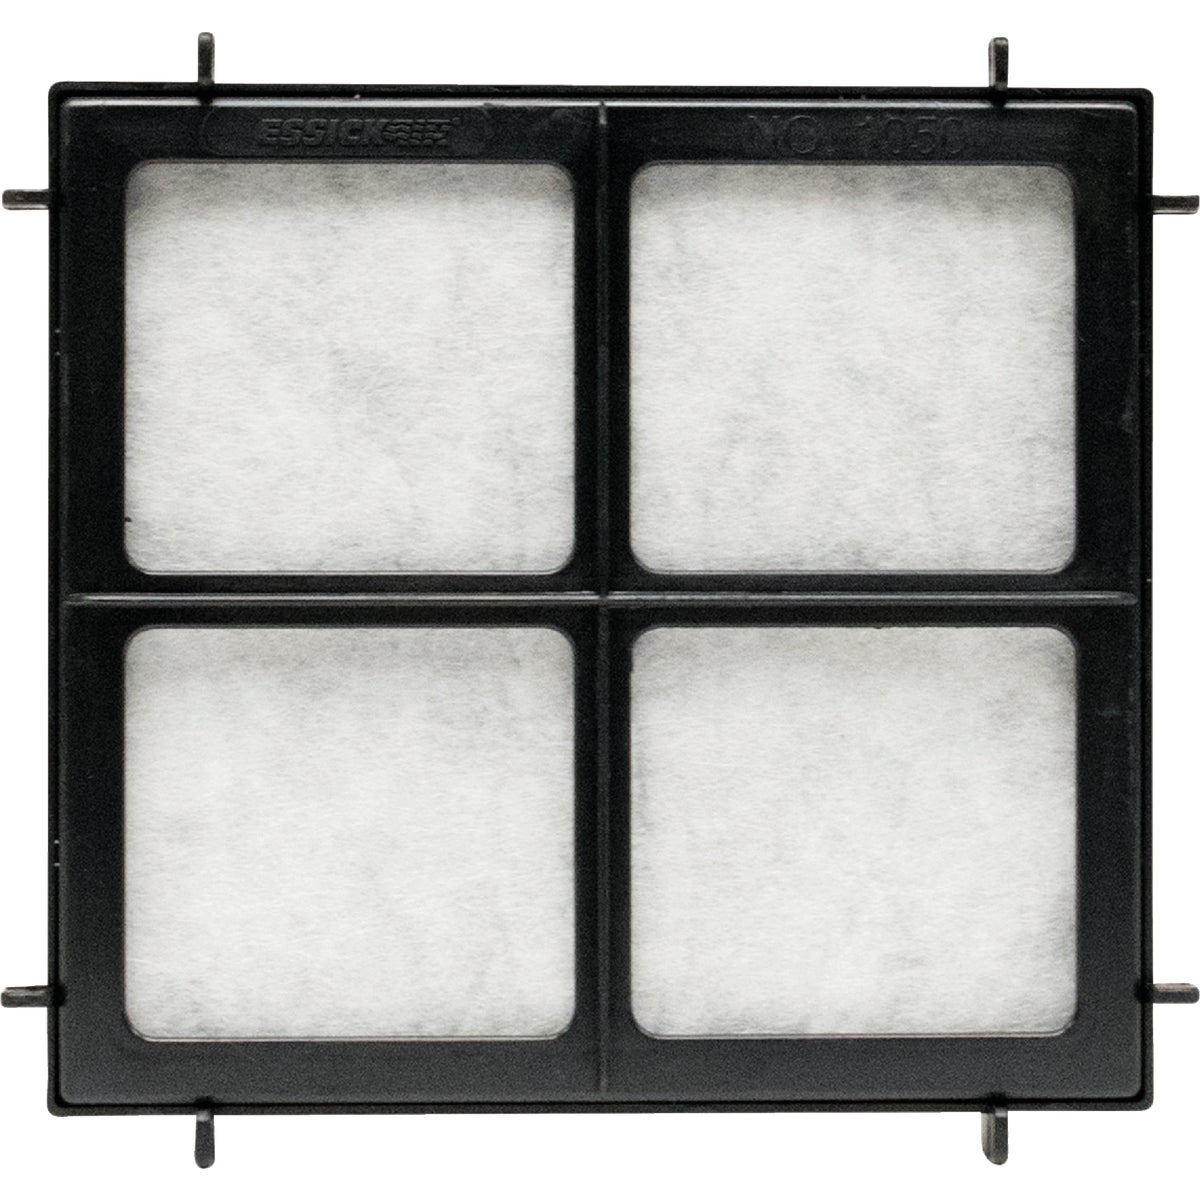 AIR CLEANER FILTER - 1050 by Essick Air Products